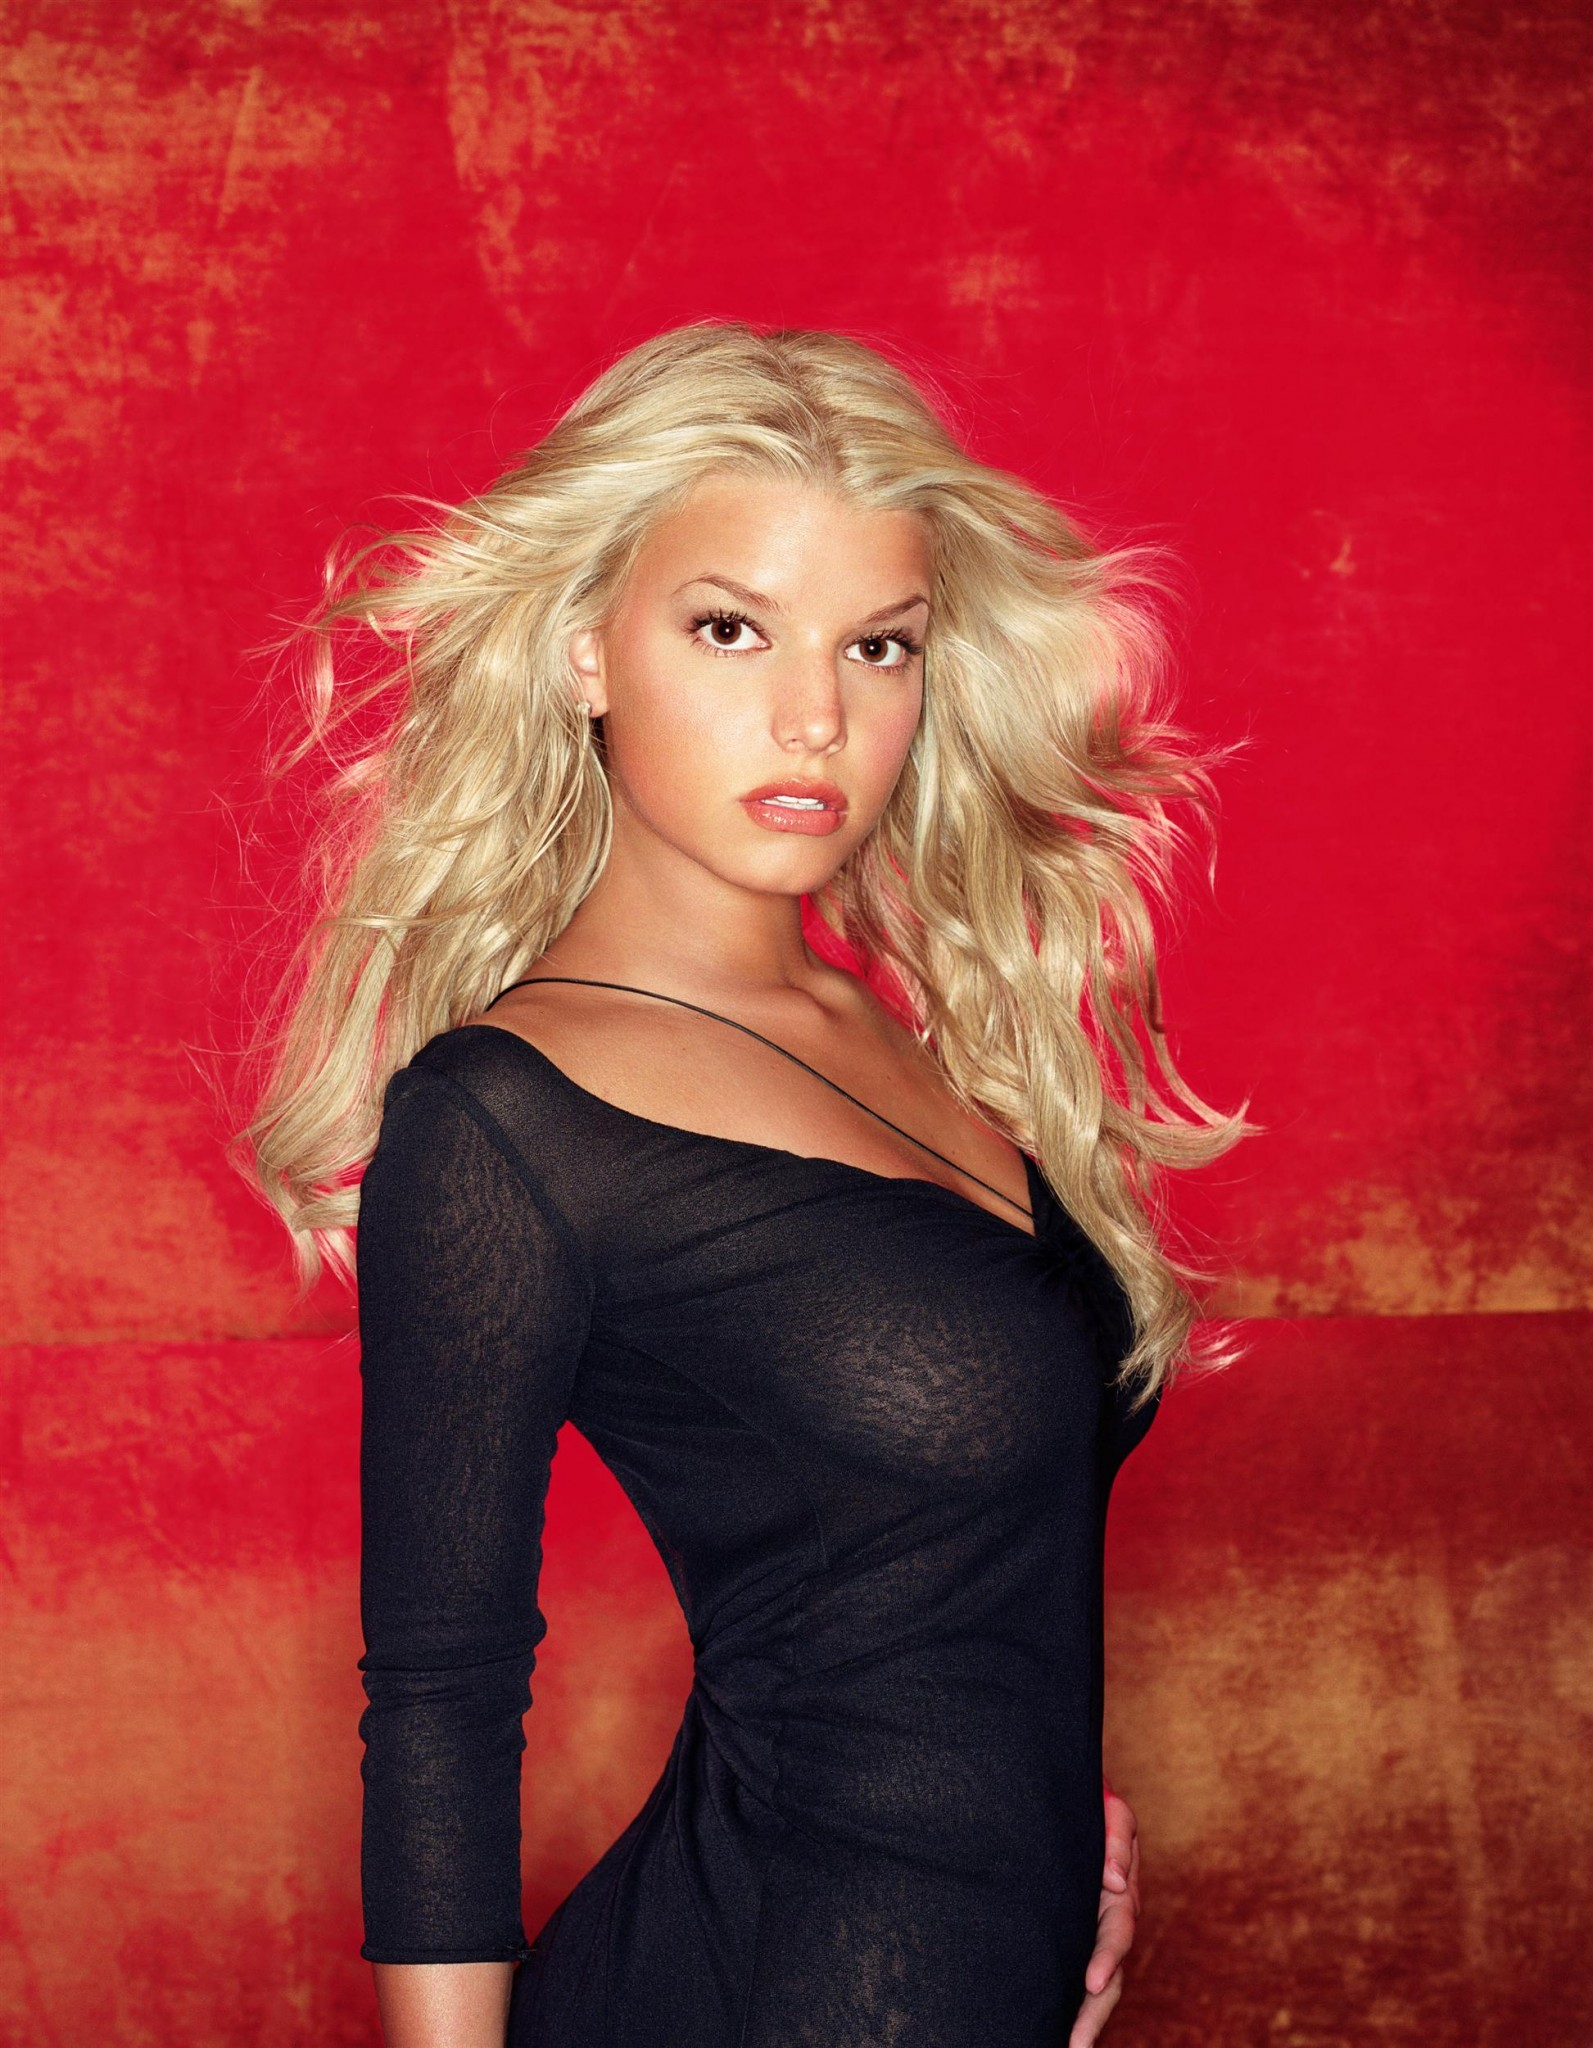 Nude pics of jessica simpson images 68